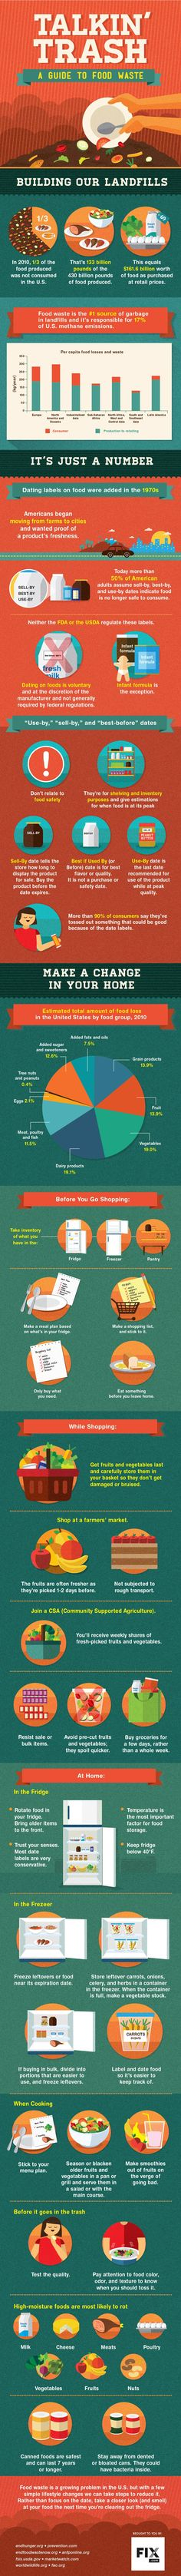 This infographic is a perfect reminder that you don't have to throw out as much as you think.